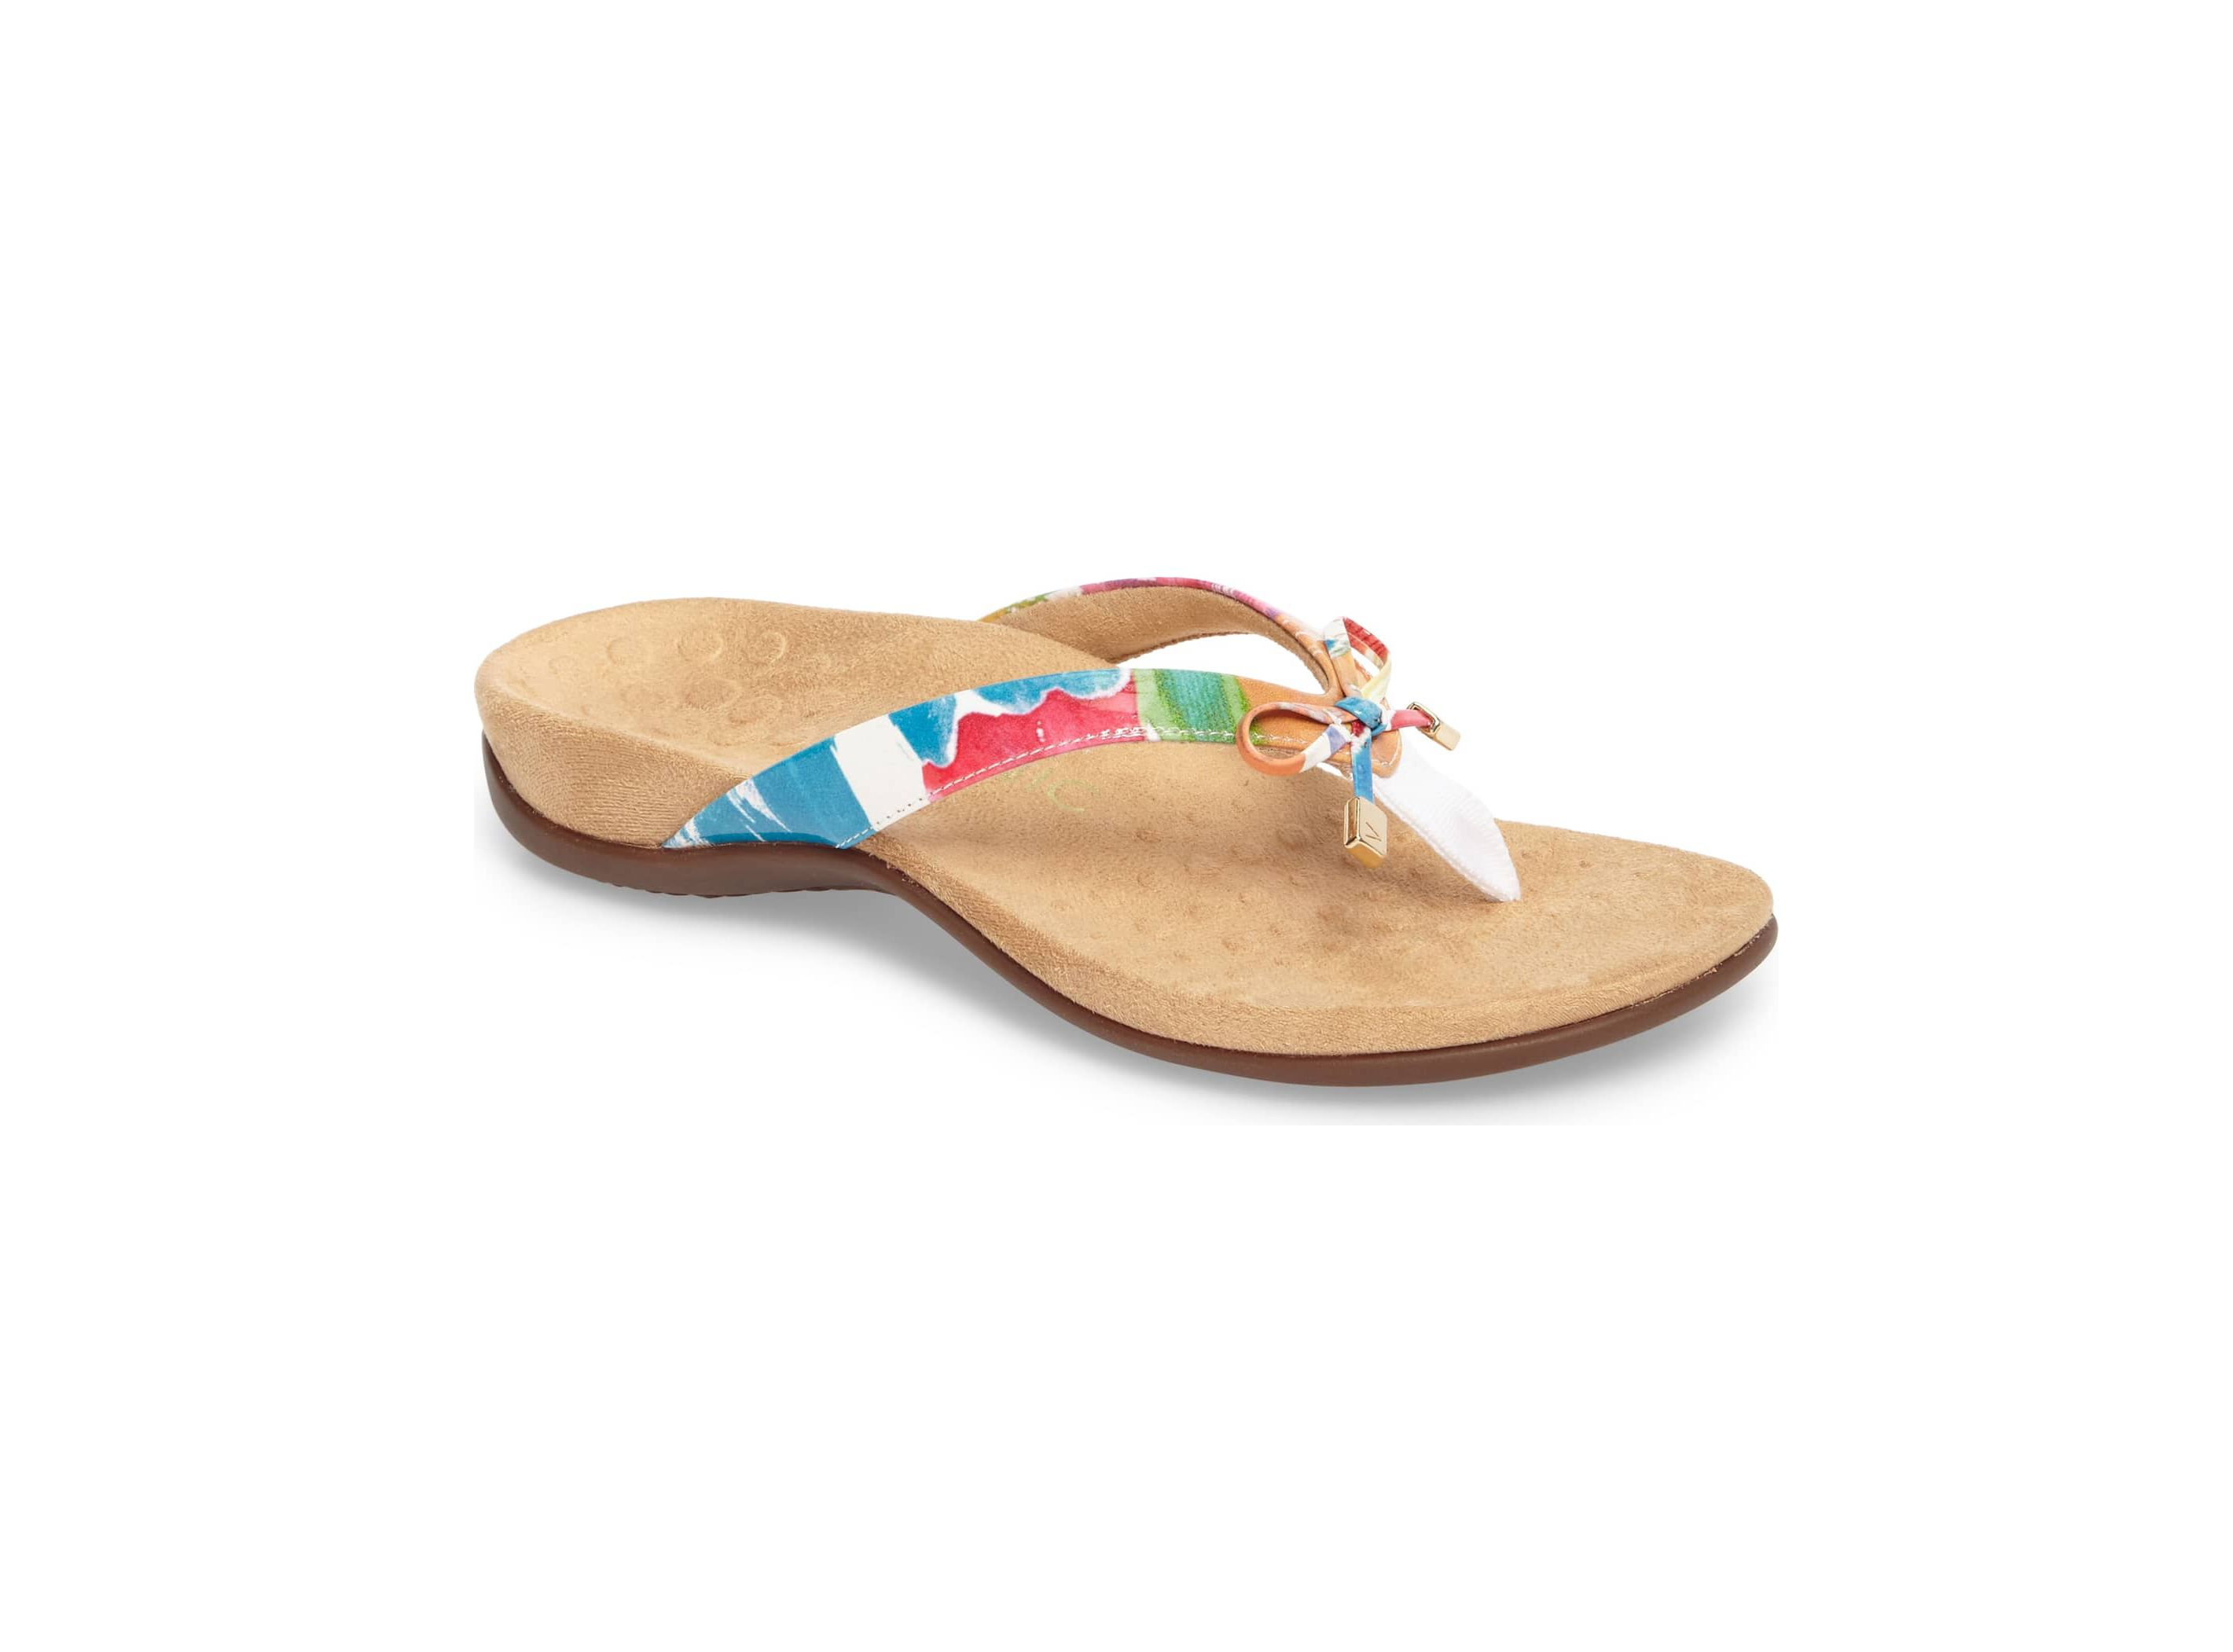 sandals with the best arch support